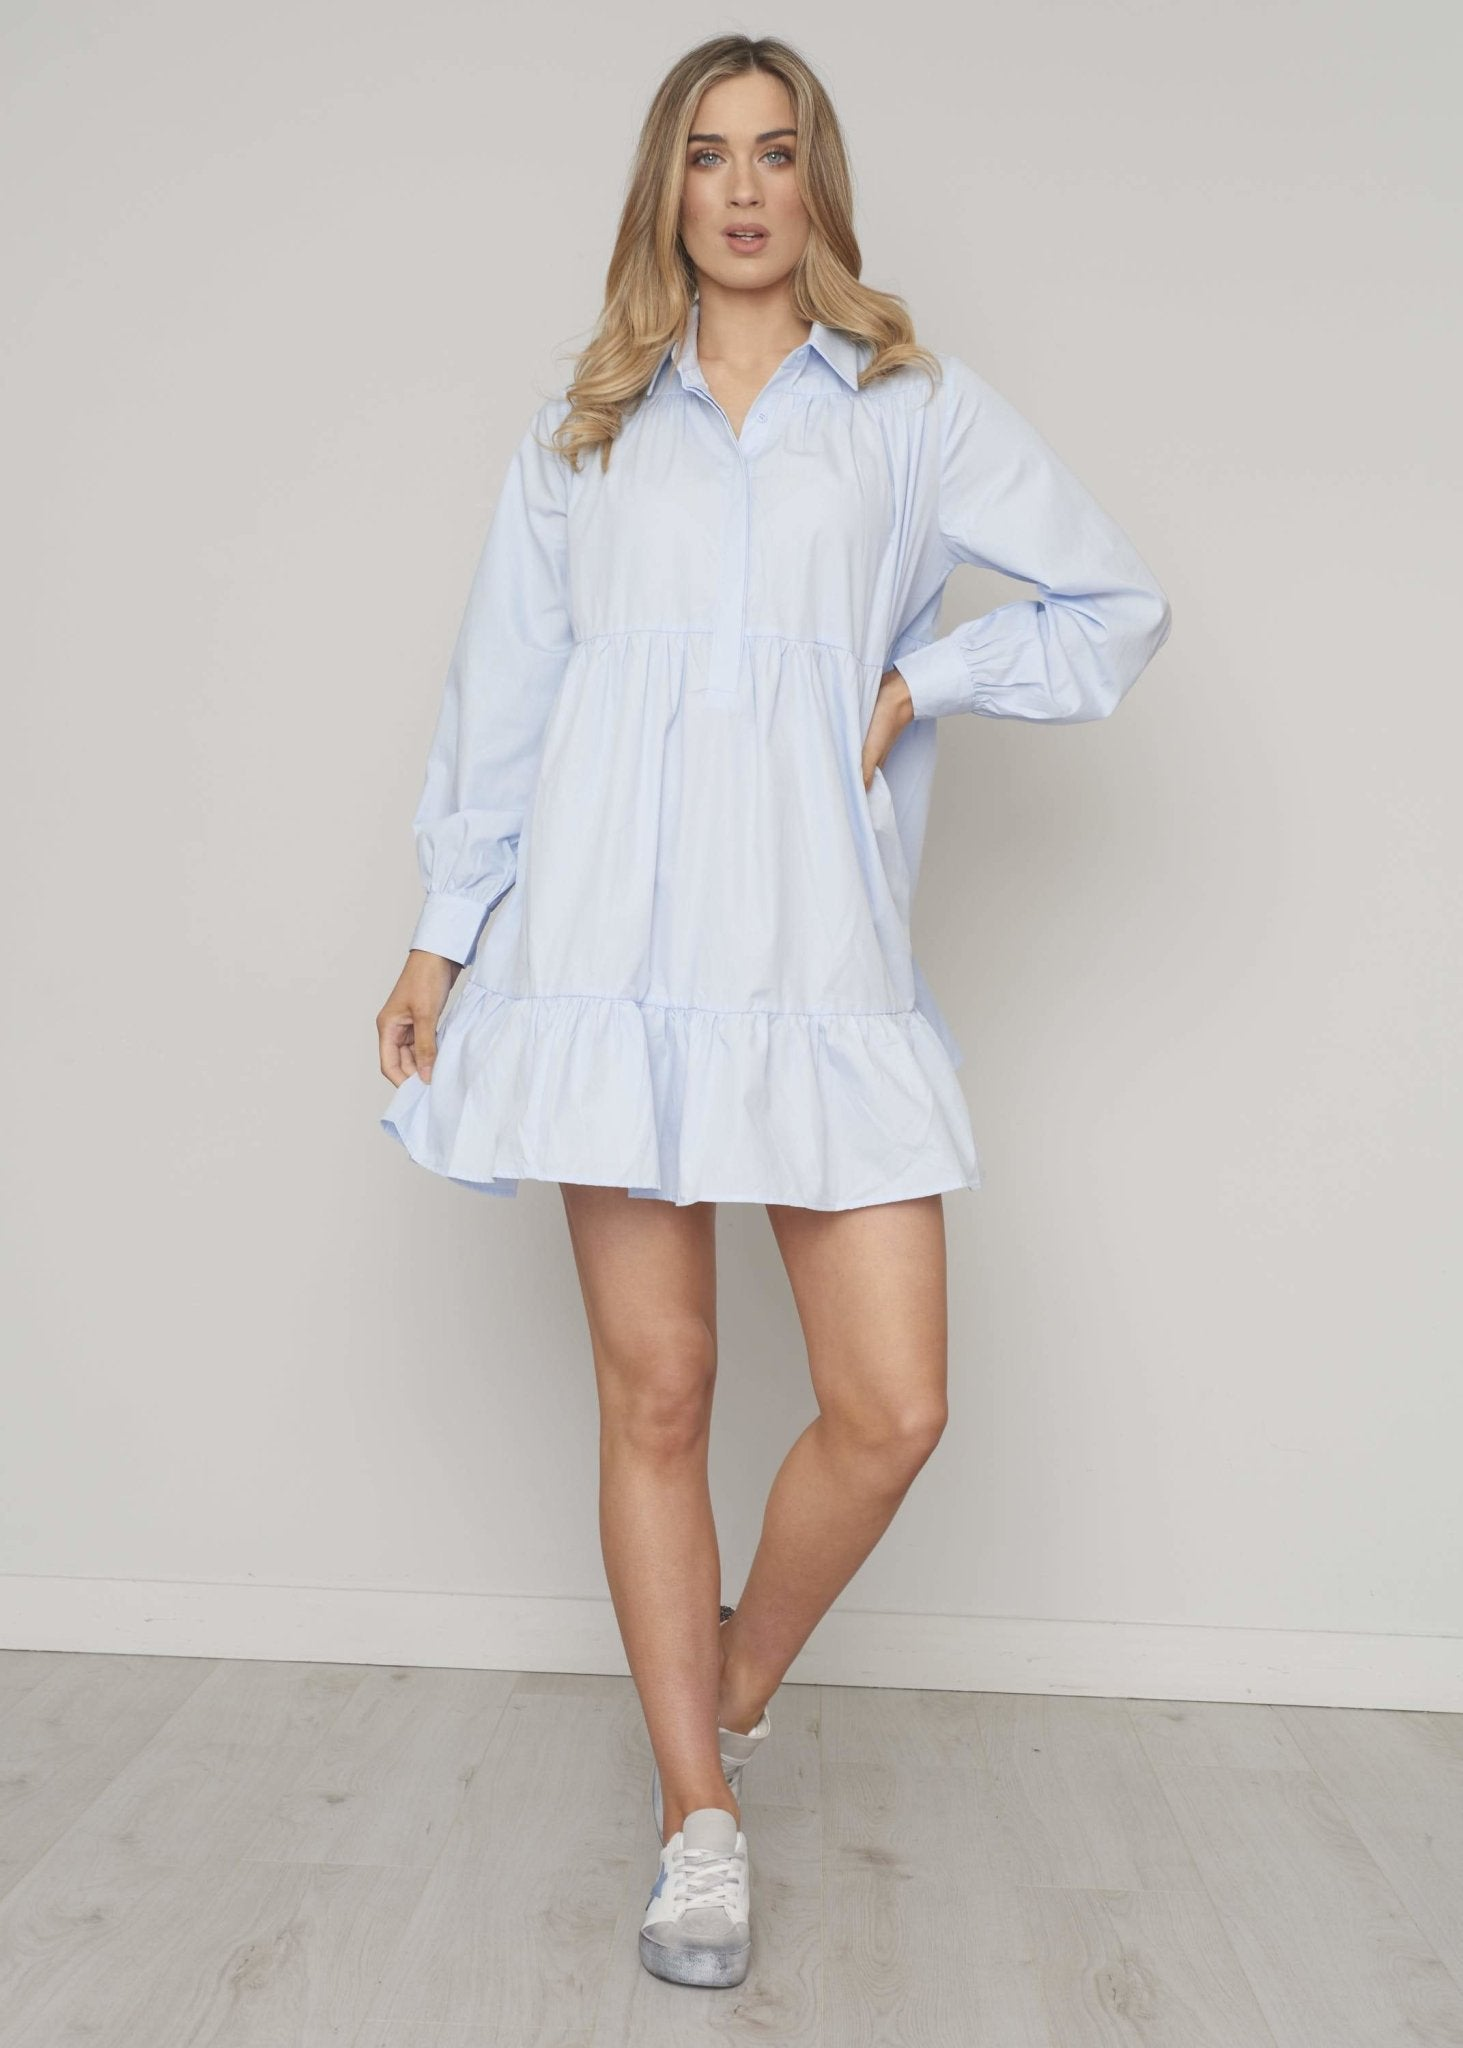 Elsa Tiered Shirt Dress In Blue - The Walk in Wardrobe